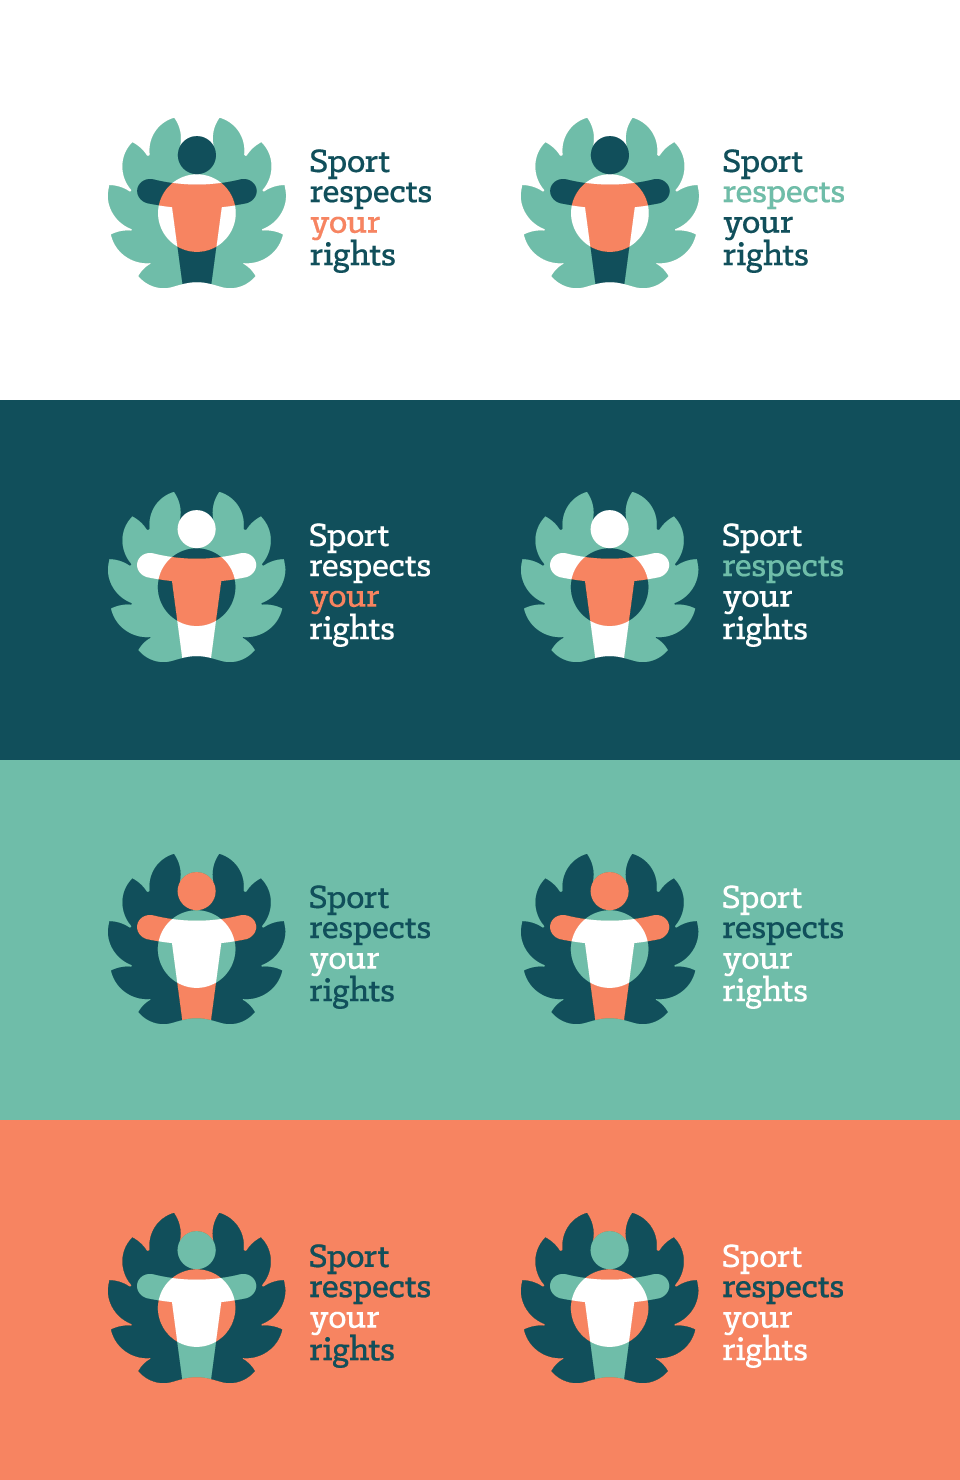 Sport respects your rights